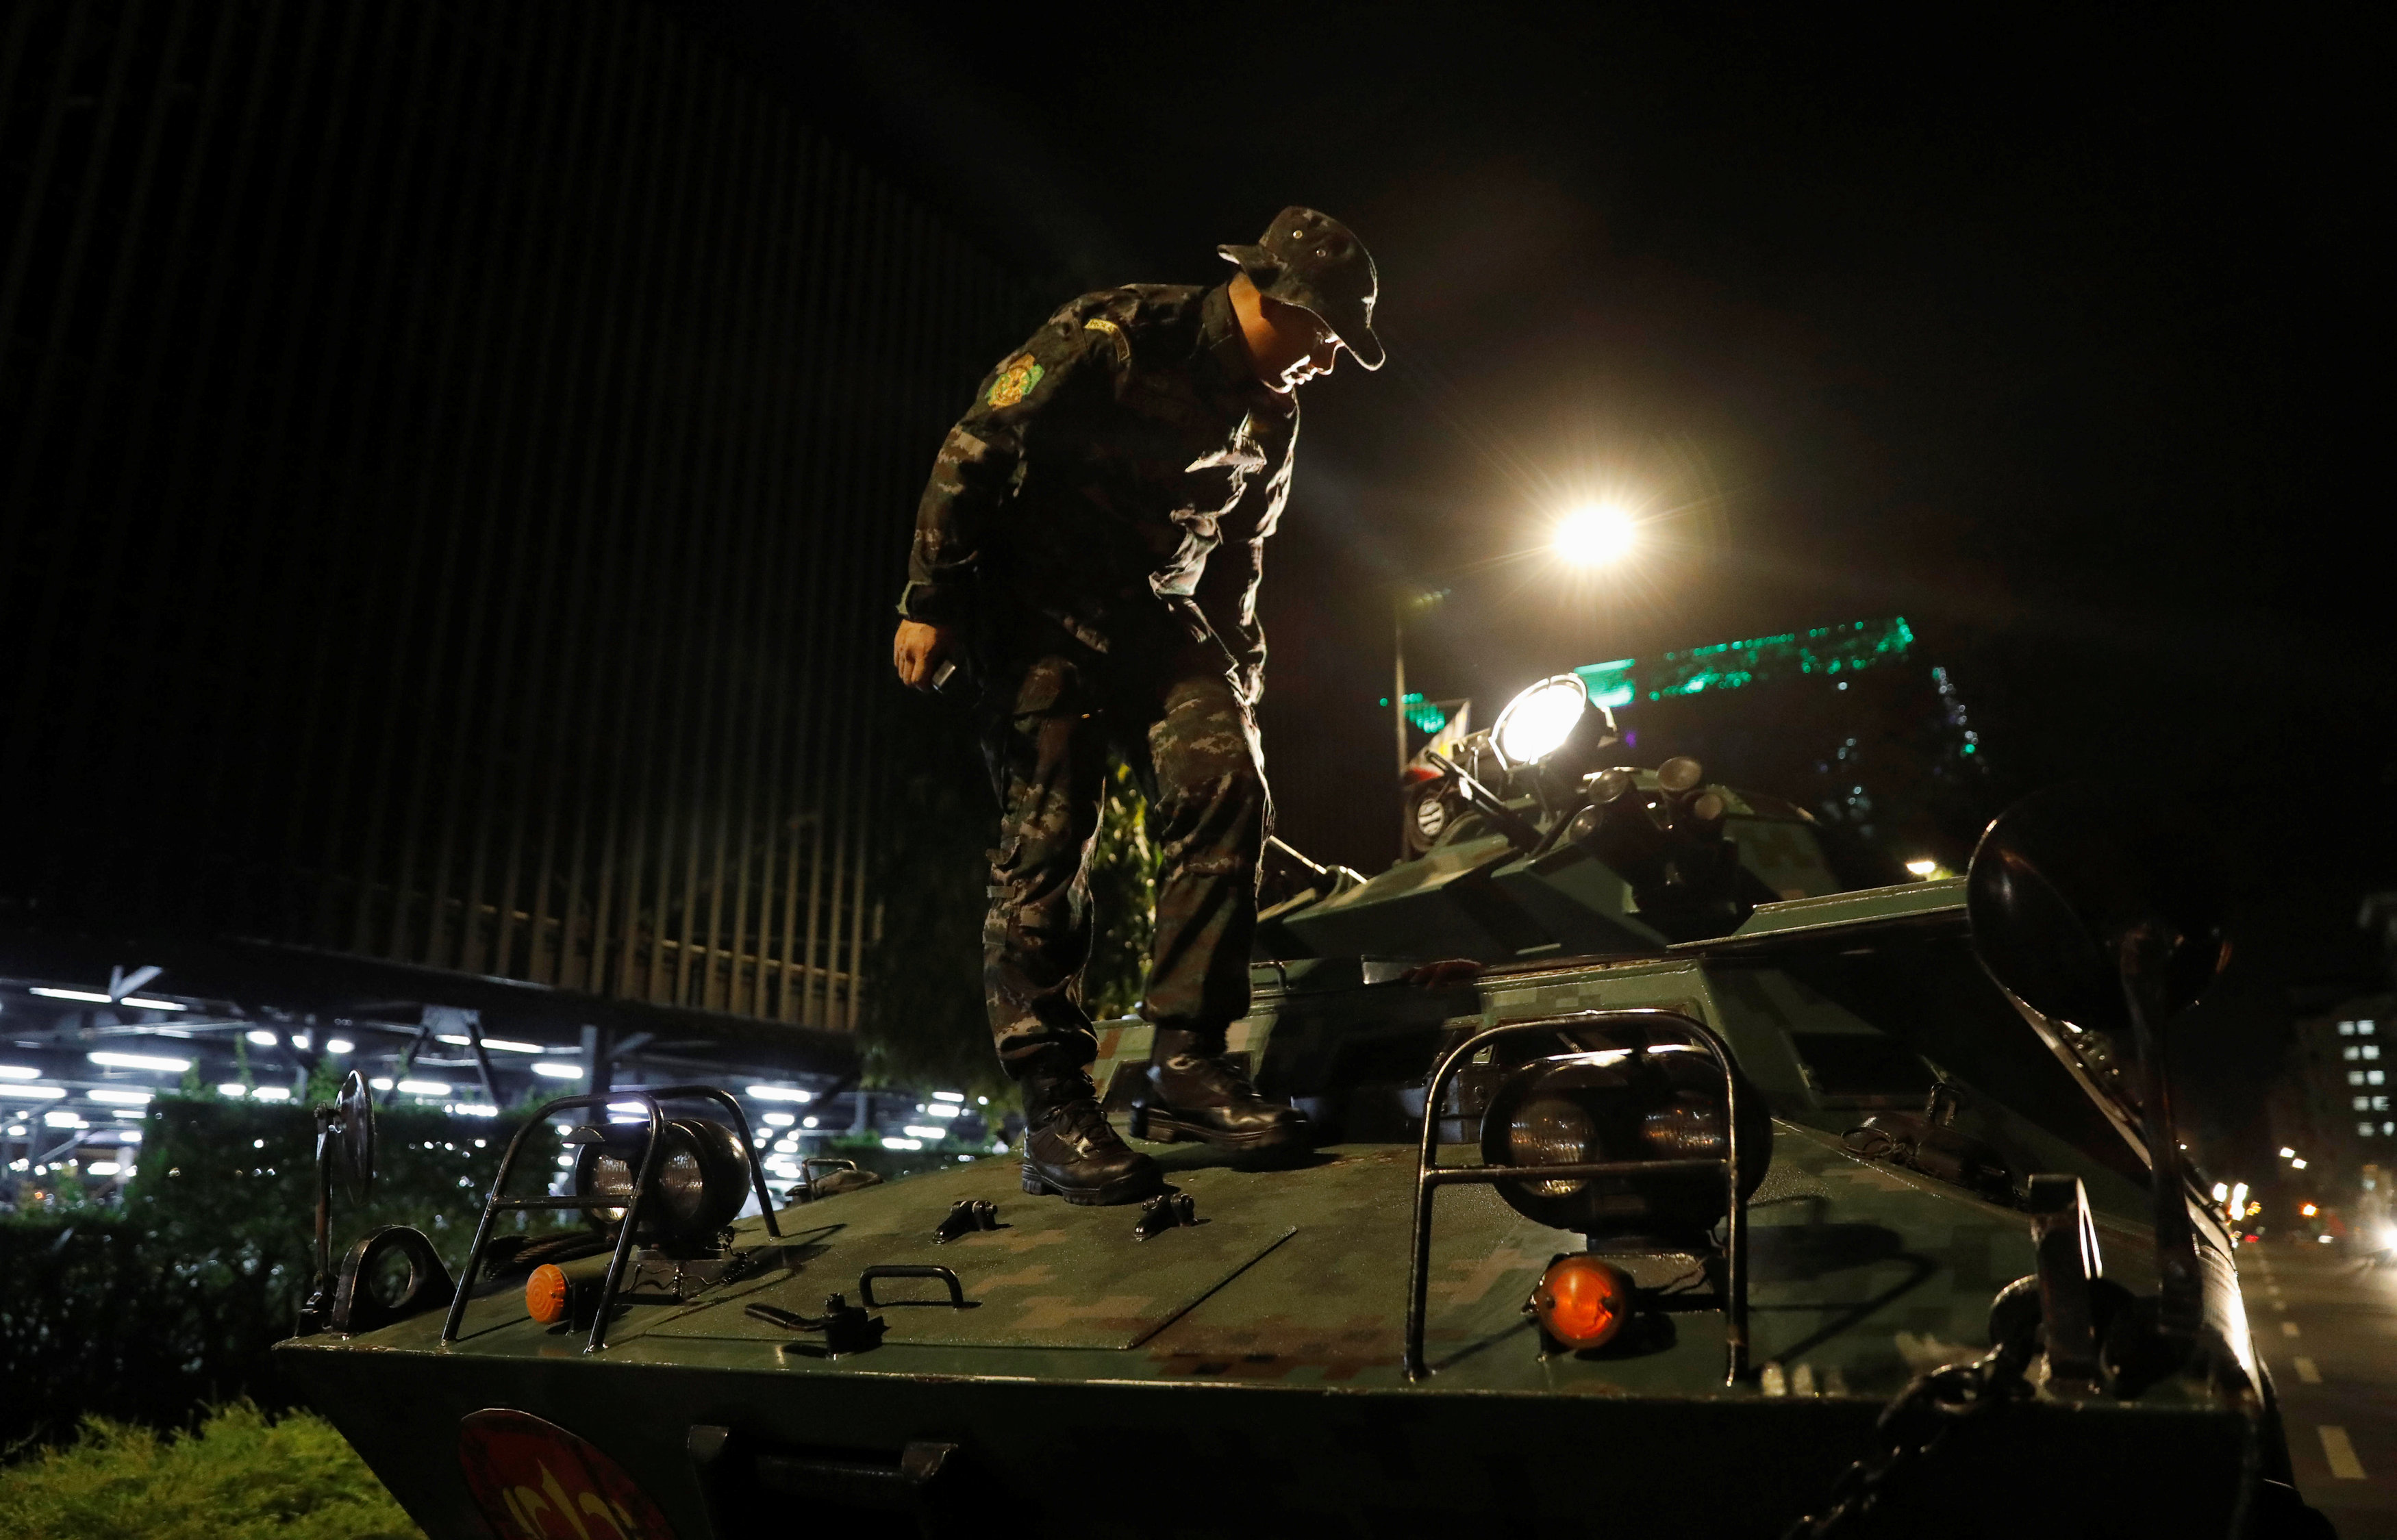 A policeman alights from an armoured fighting vehicle (AFV) near the Resorts World Manila after gunshots and explosions were heard in Pasay City, Metro Manila, Philippines on June 2, 2017. (REUTERS/Erik De Castro)